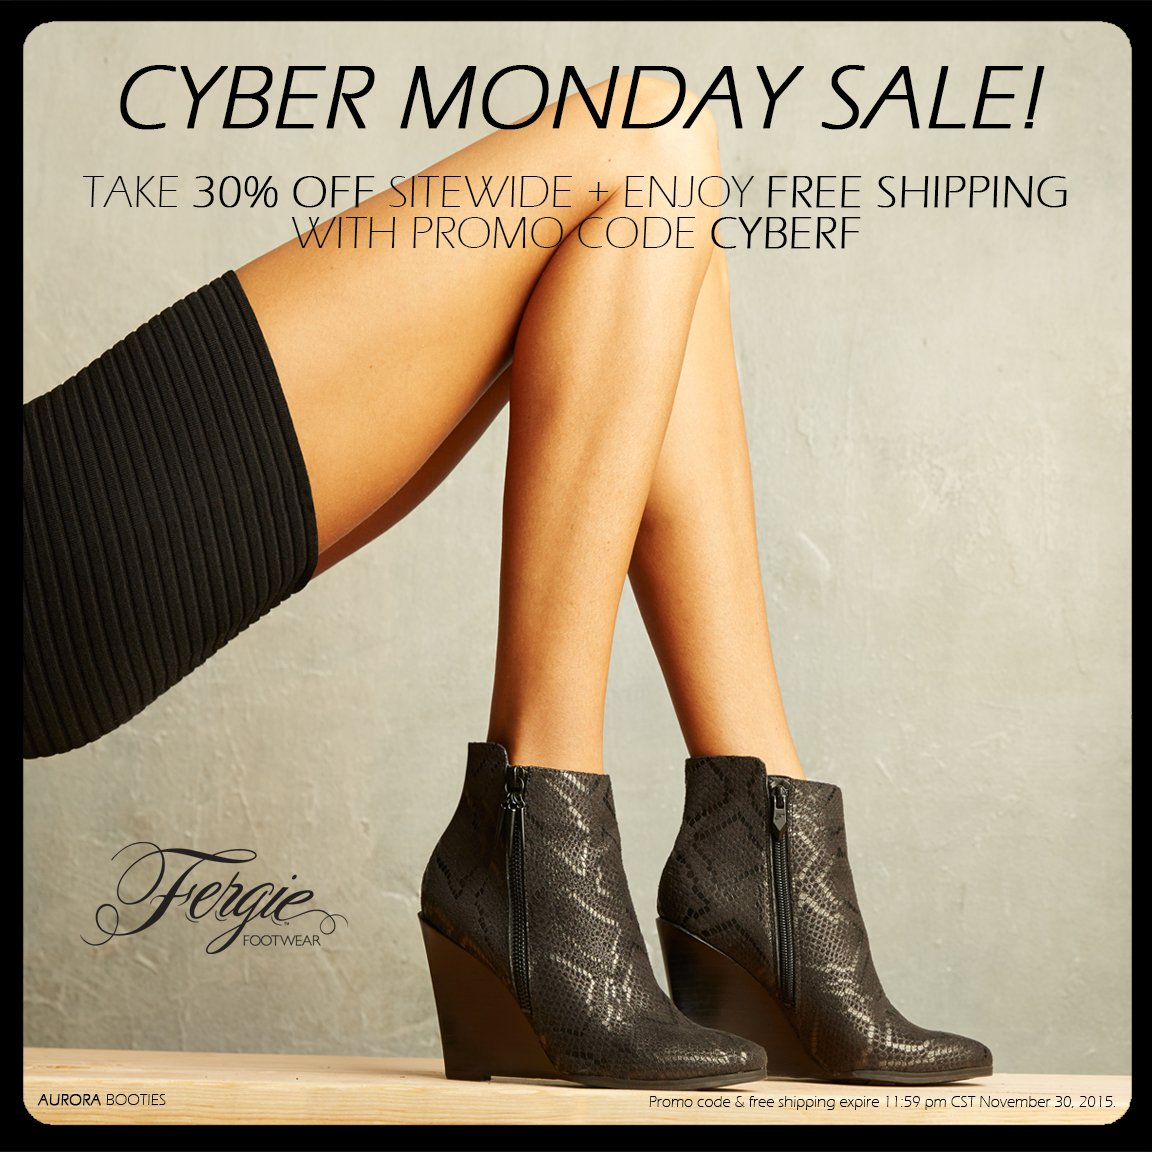 RT @FergieFootwear: #CyberMonday ONLY enjoy 30%OFF @Fergie #shoes + #FREEshipping w/ #promocode CYBERF.#shoesale https://t.co/YYKsJG8ljr ht…